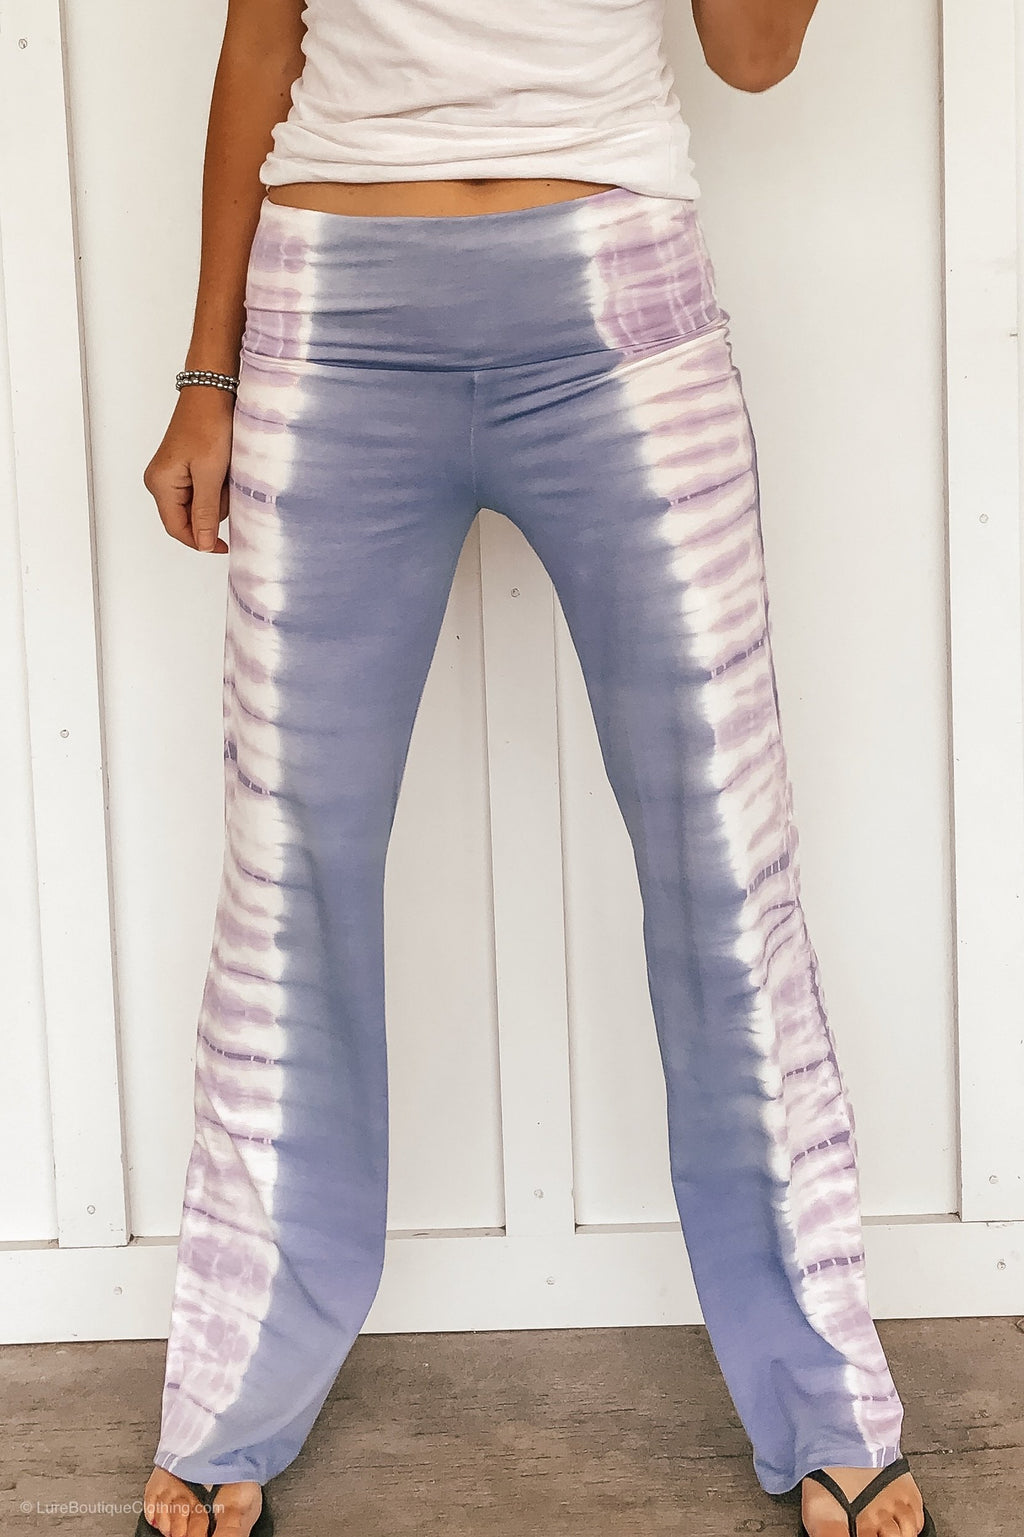 Fold Over Tie Dye Yoga Pants - Lavender - LURE Boutique